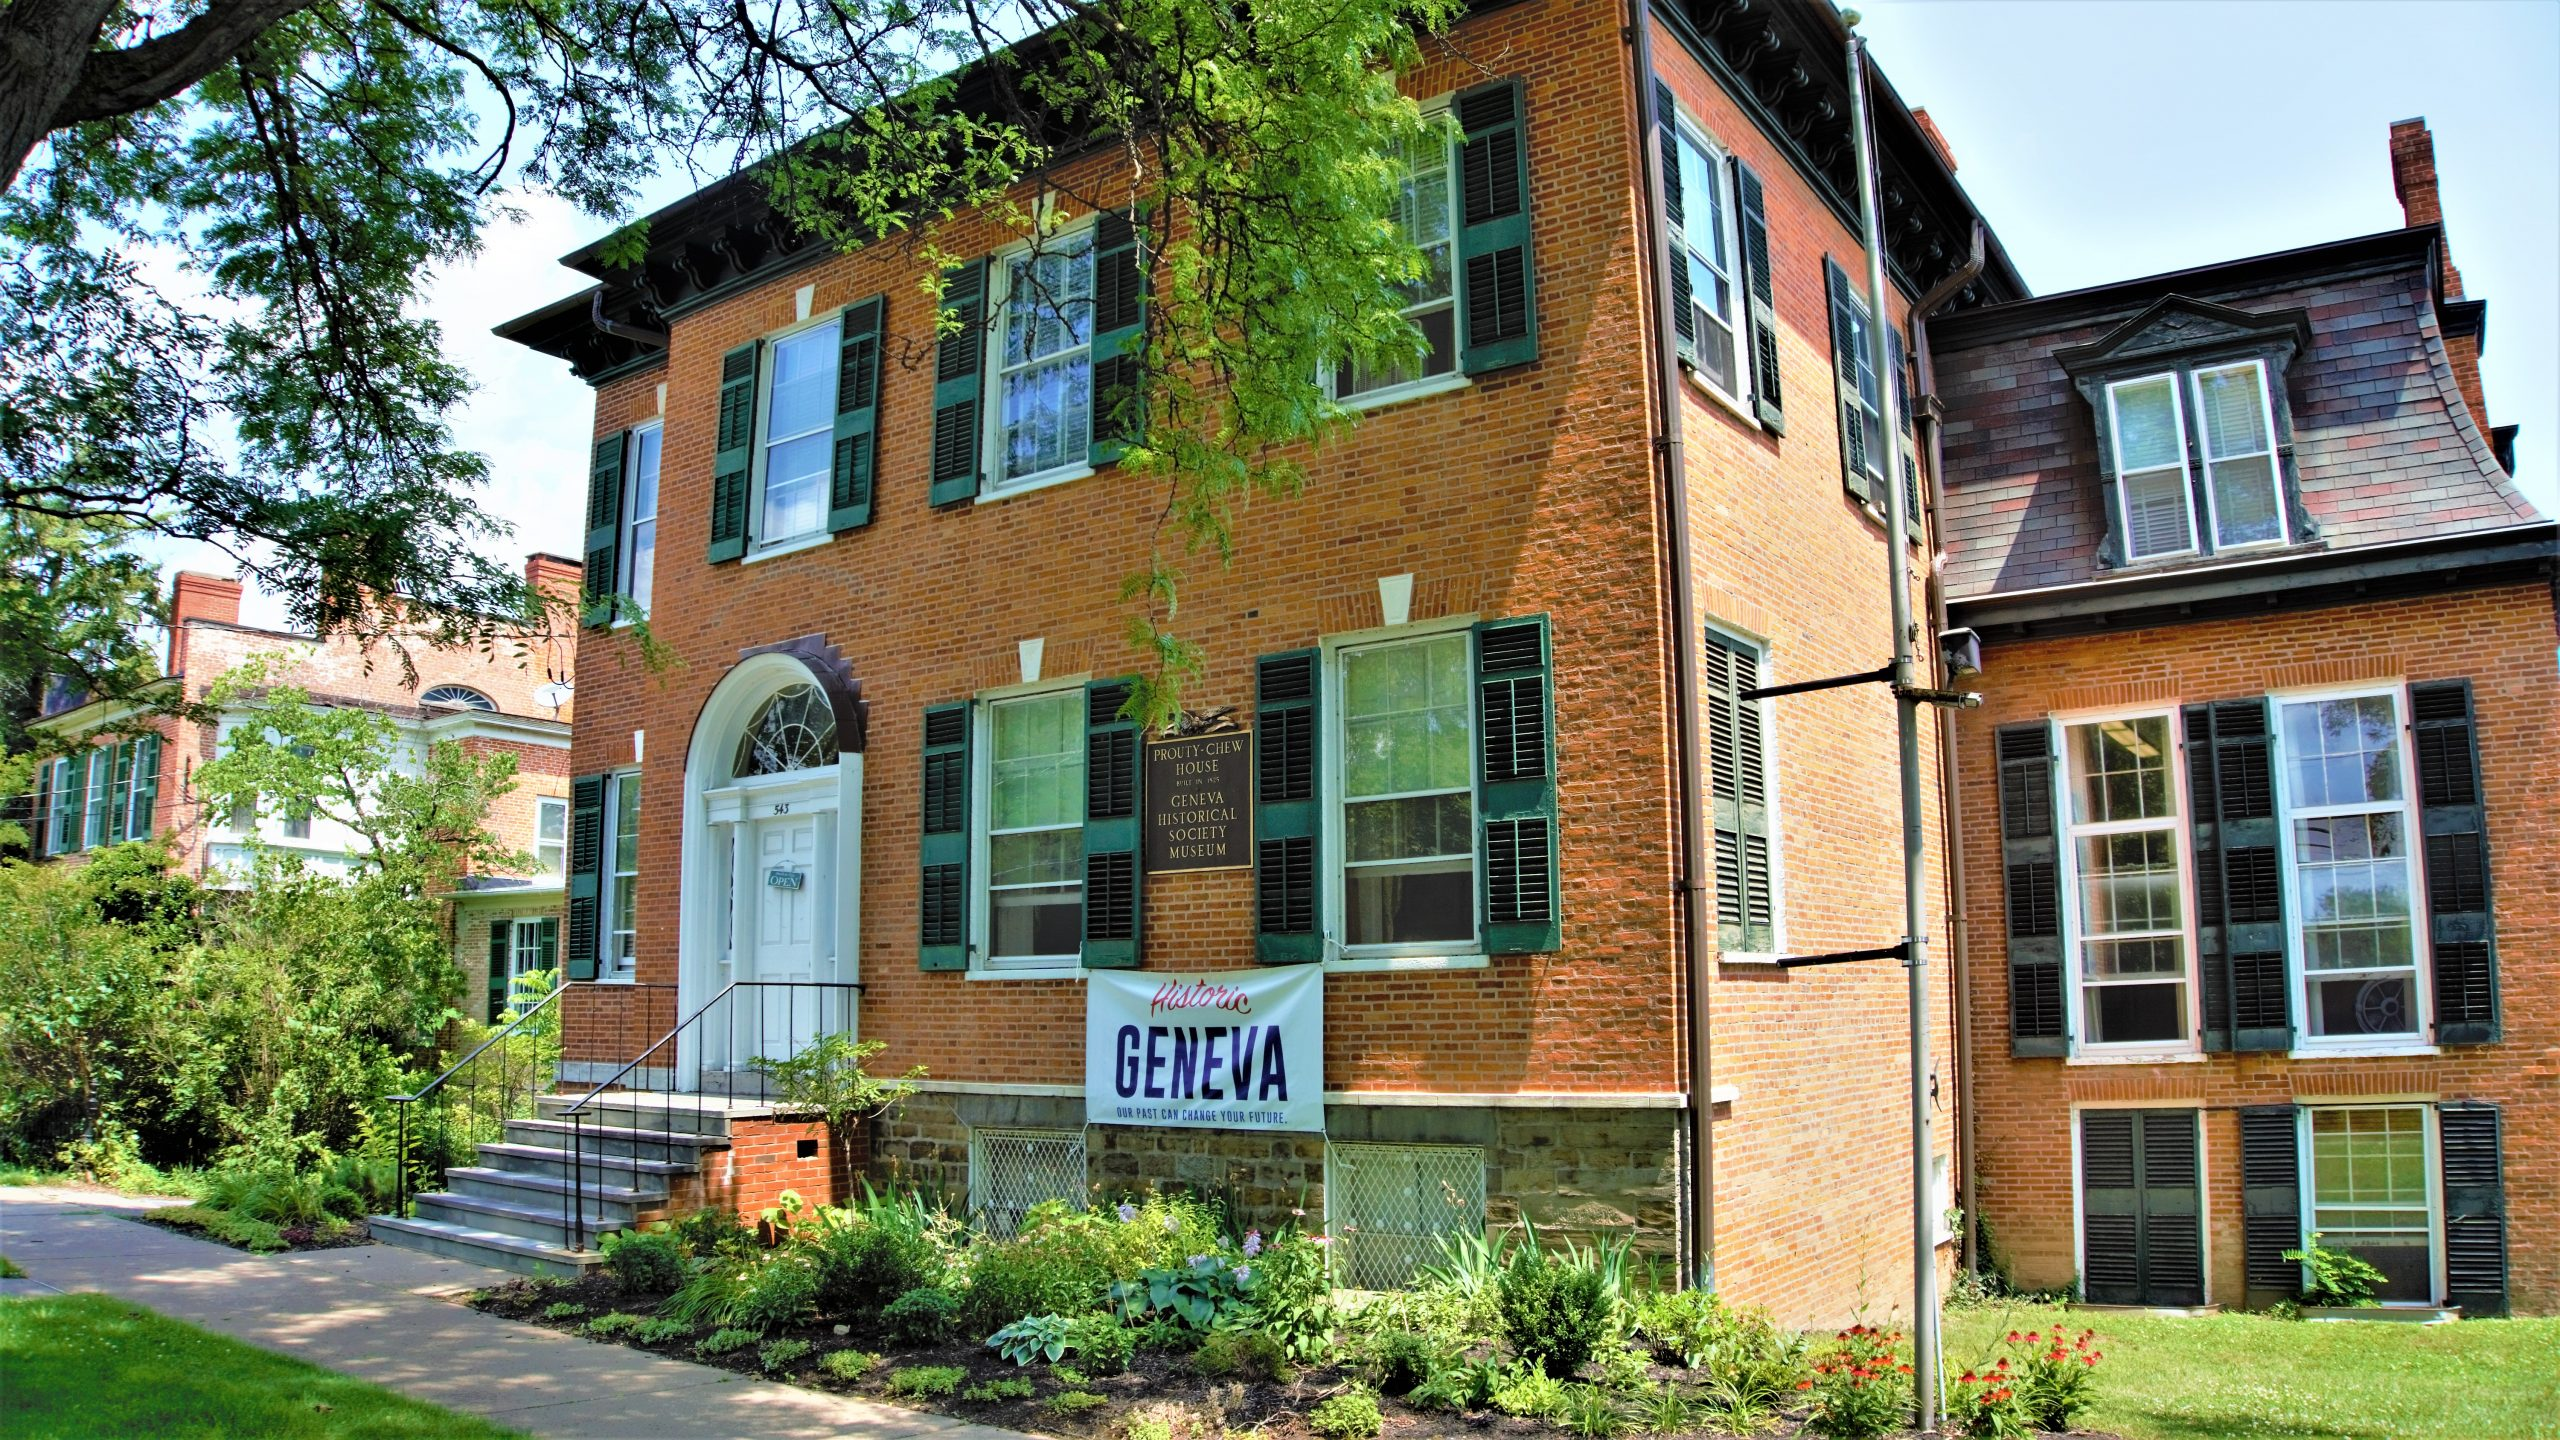 Historic Geneva has a new name with a stronger mission of connecting with community members